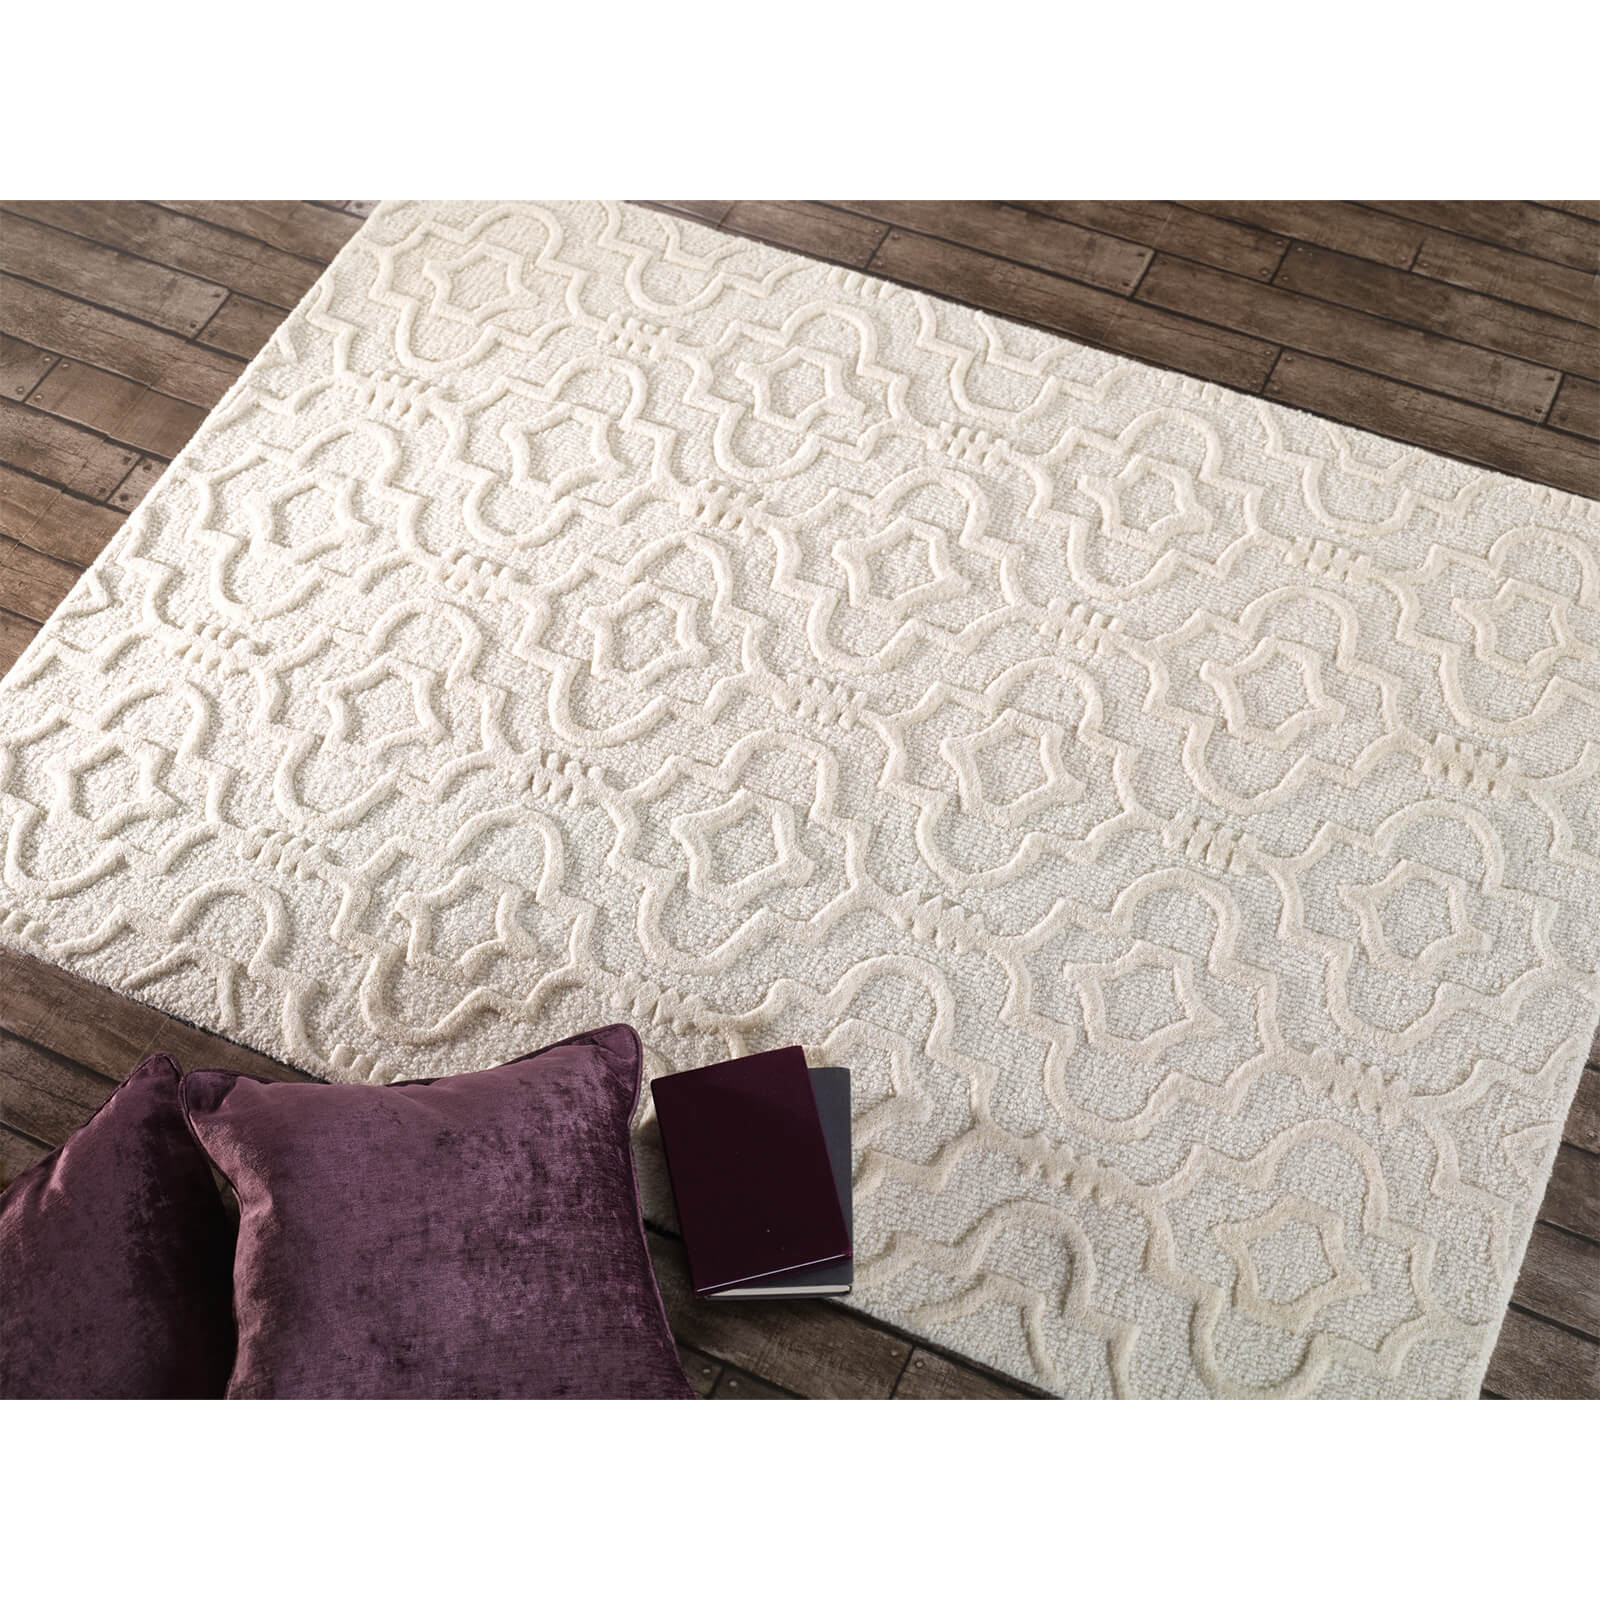 Flair Moorish Marrakech Rug - Cream